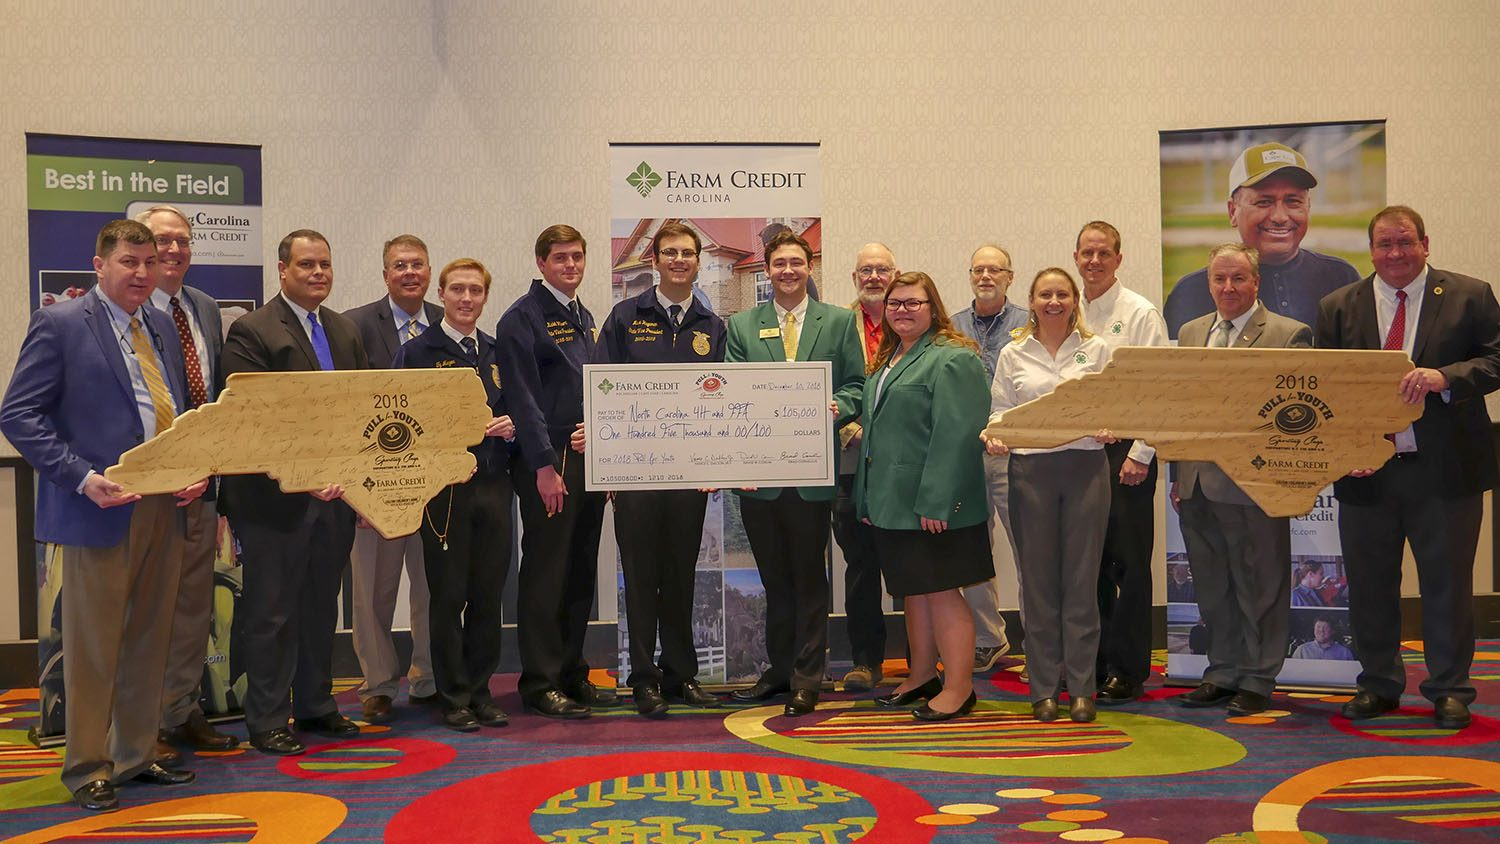 15 people holding a check for $105,000 and two large wooden plaques in the shape of North Carolina